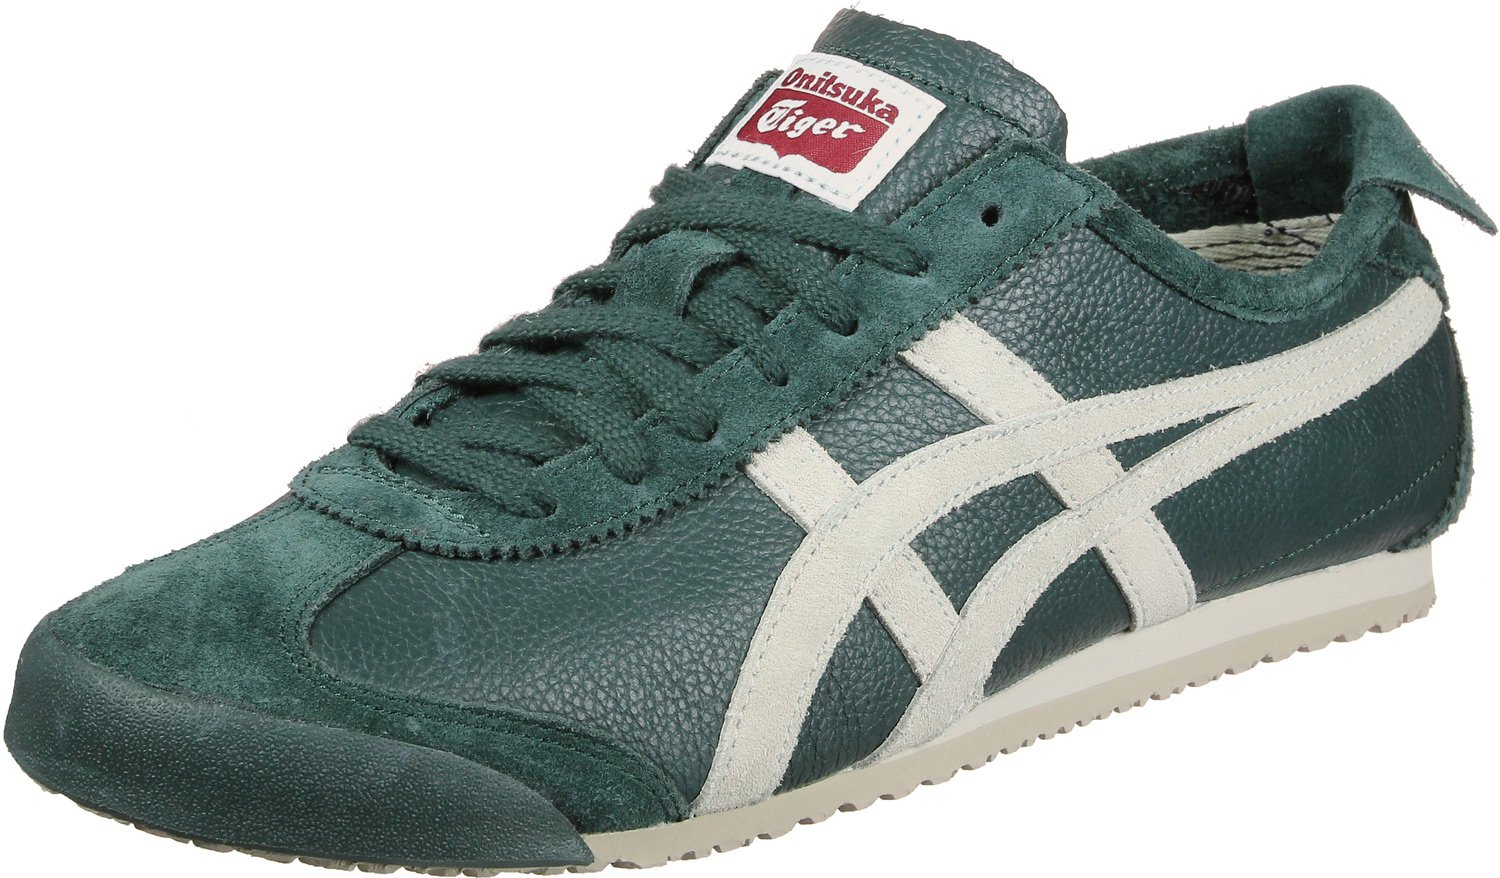 Onitsuka Tiger Mexico 66 Vin Dark Forest Feather Grey  48 EU|Gr眉n